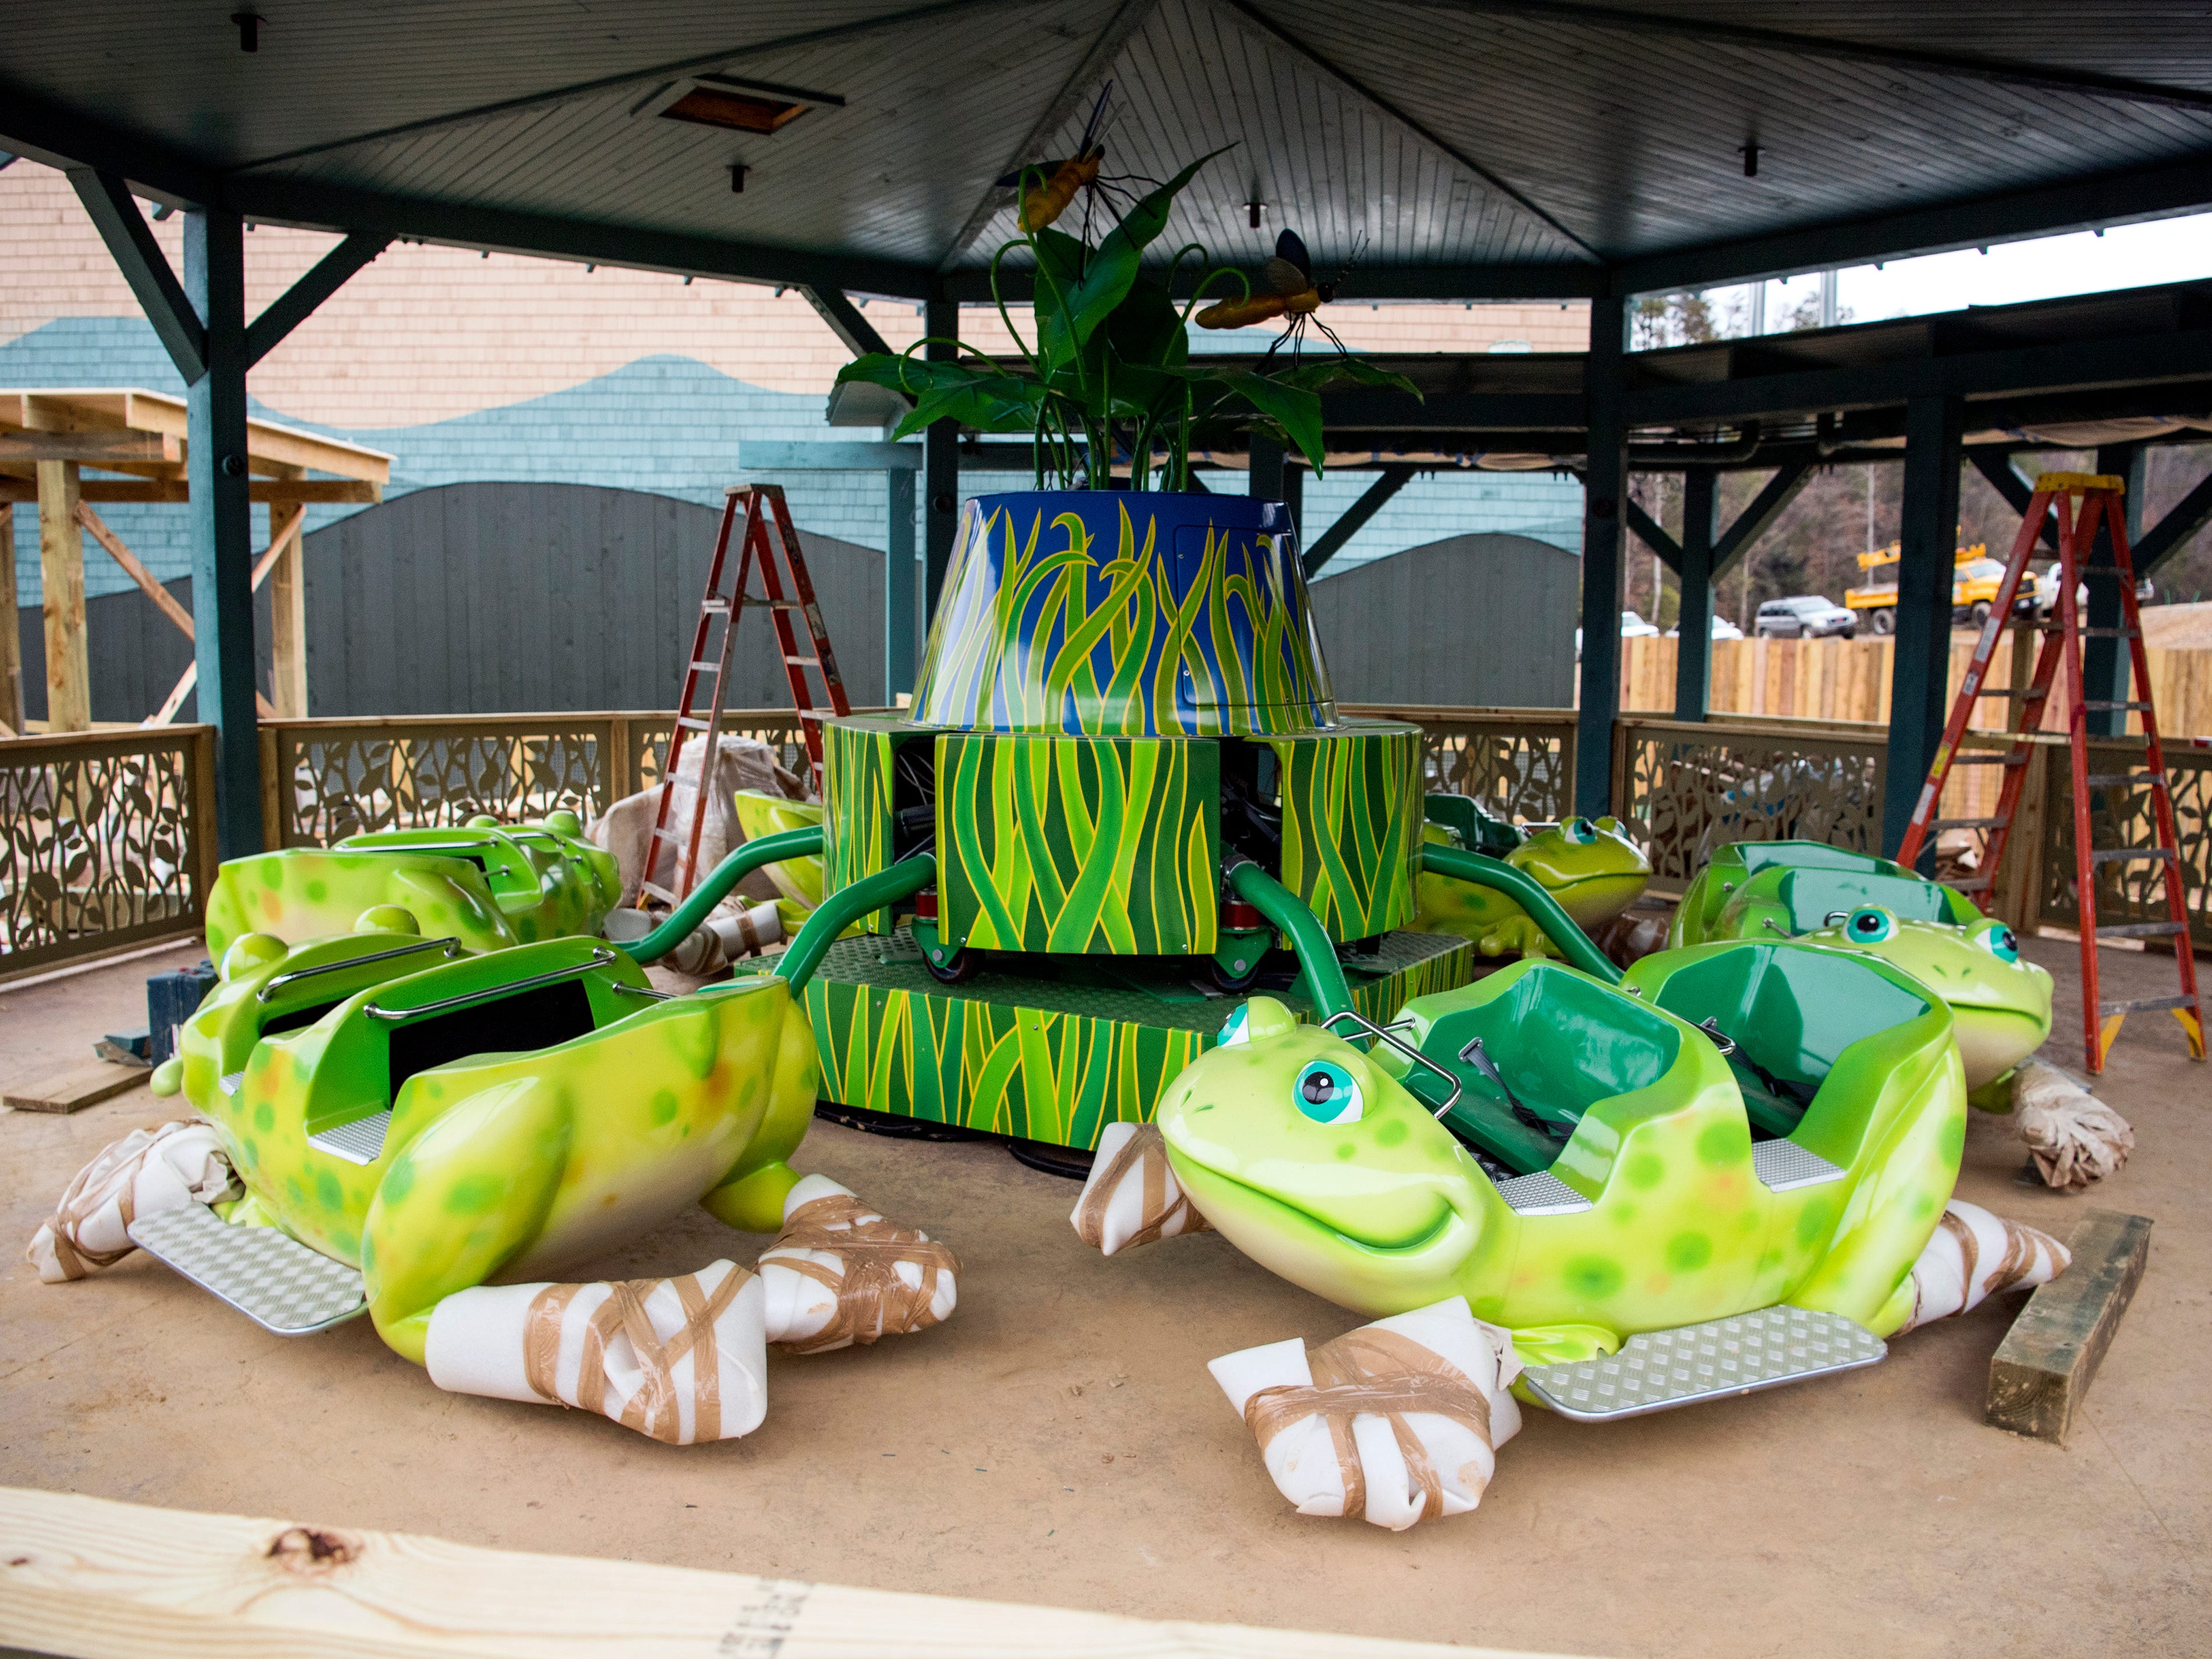 The Frogs & Fireflies ride in Dollywood's new Wildwood Grove area of the park on Tuesday, February 19, 2019.